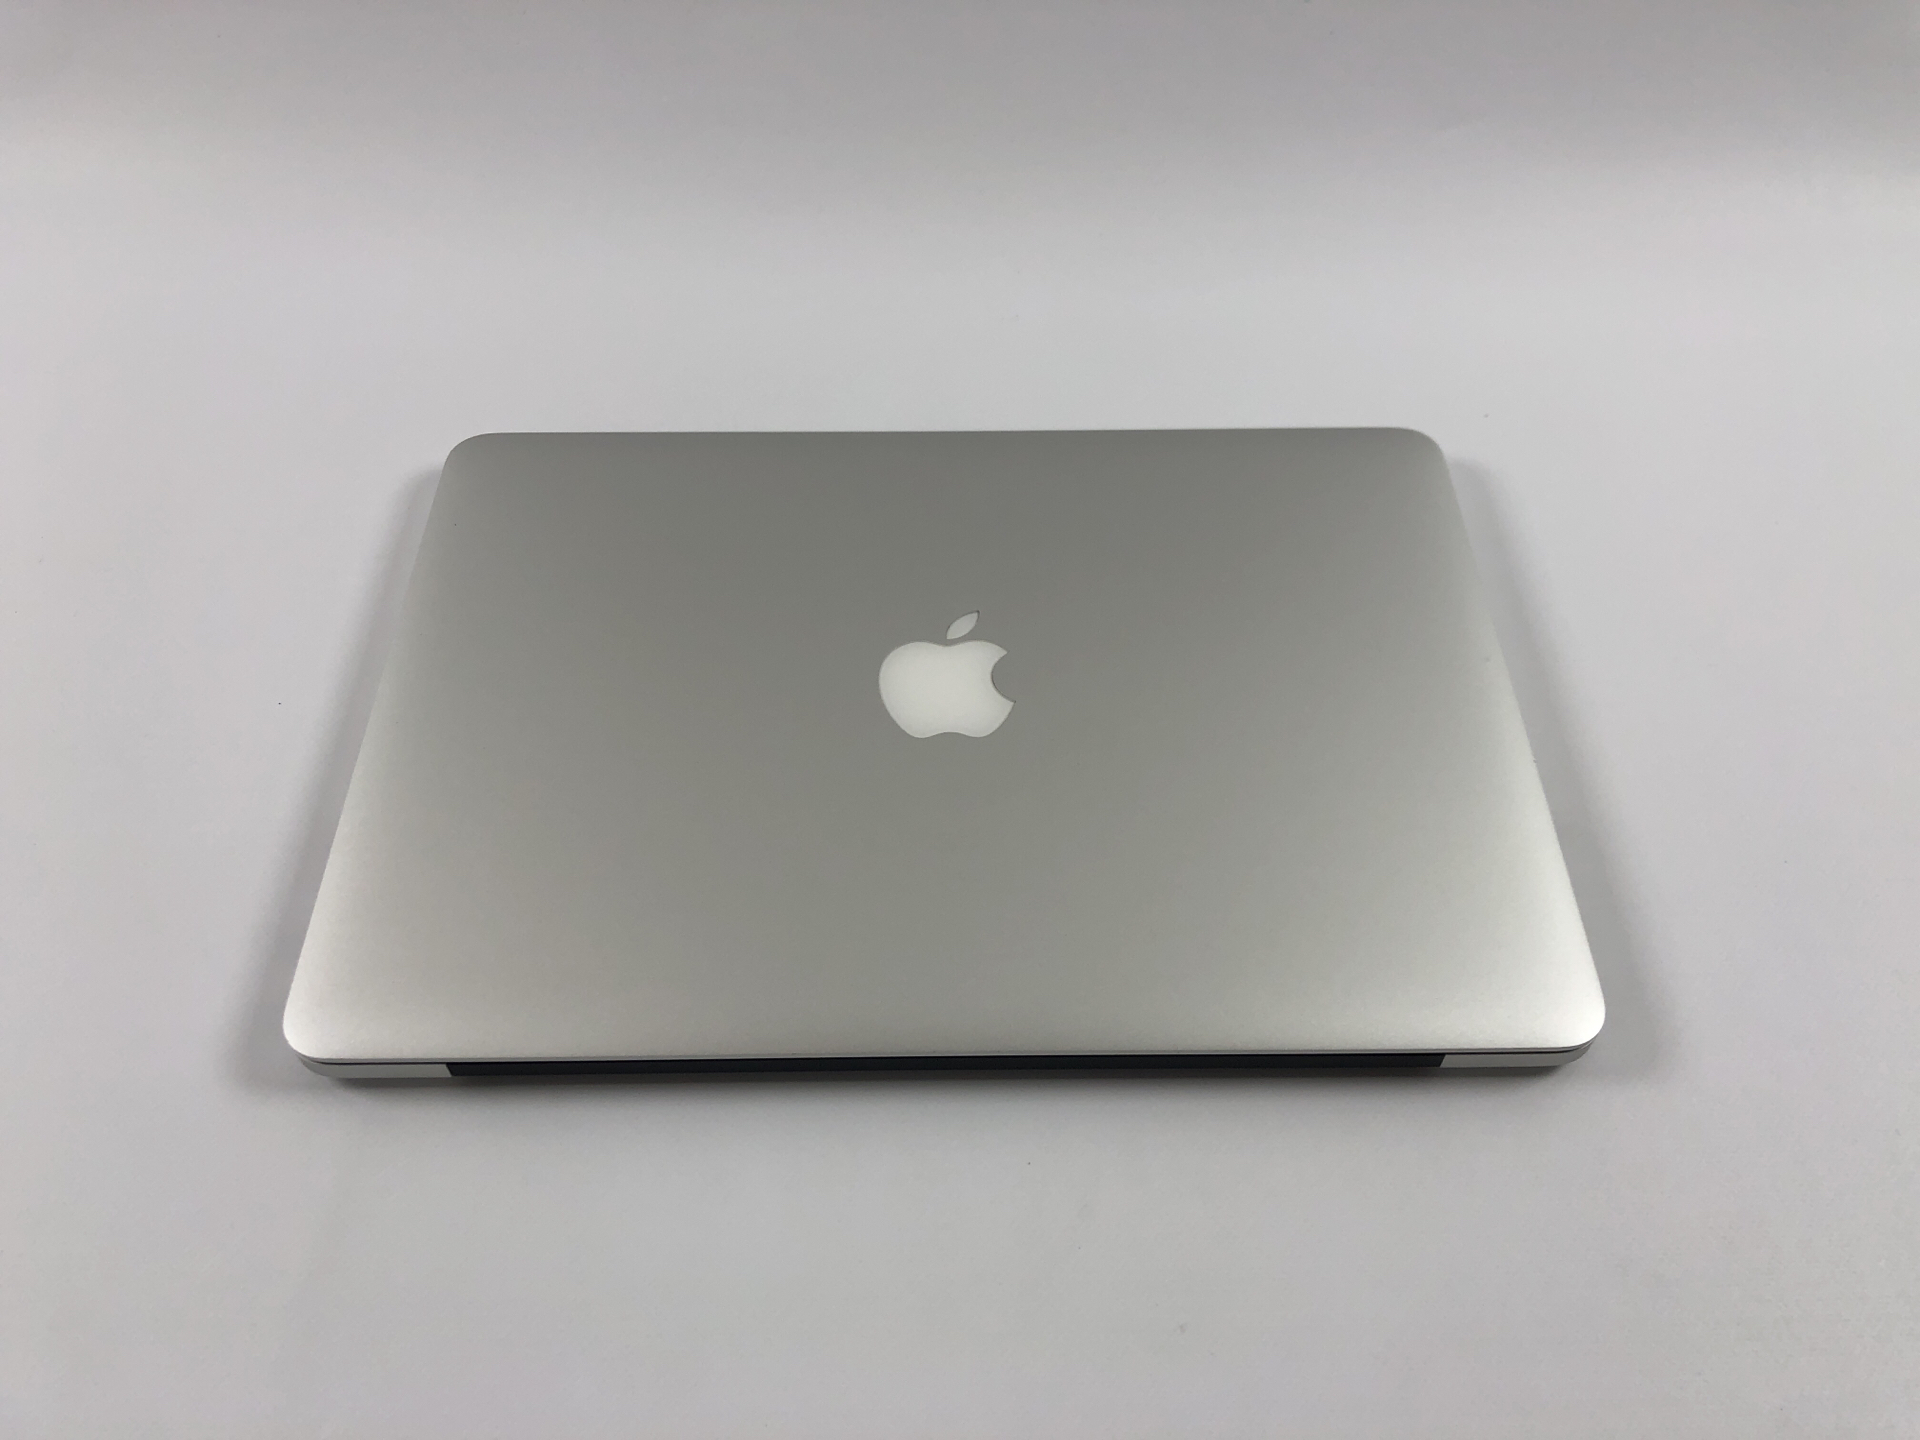 "MacBook Pro Retina 13"" Mid 2014 (Intel Core i5 2.6 GHz 8 GB RAM 256 GB SSD), Intel Core i5 2.6 GHz, 8 GB RAM, 256 GB SSD, bild 2"